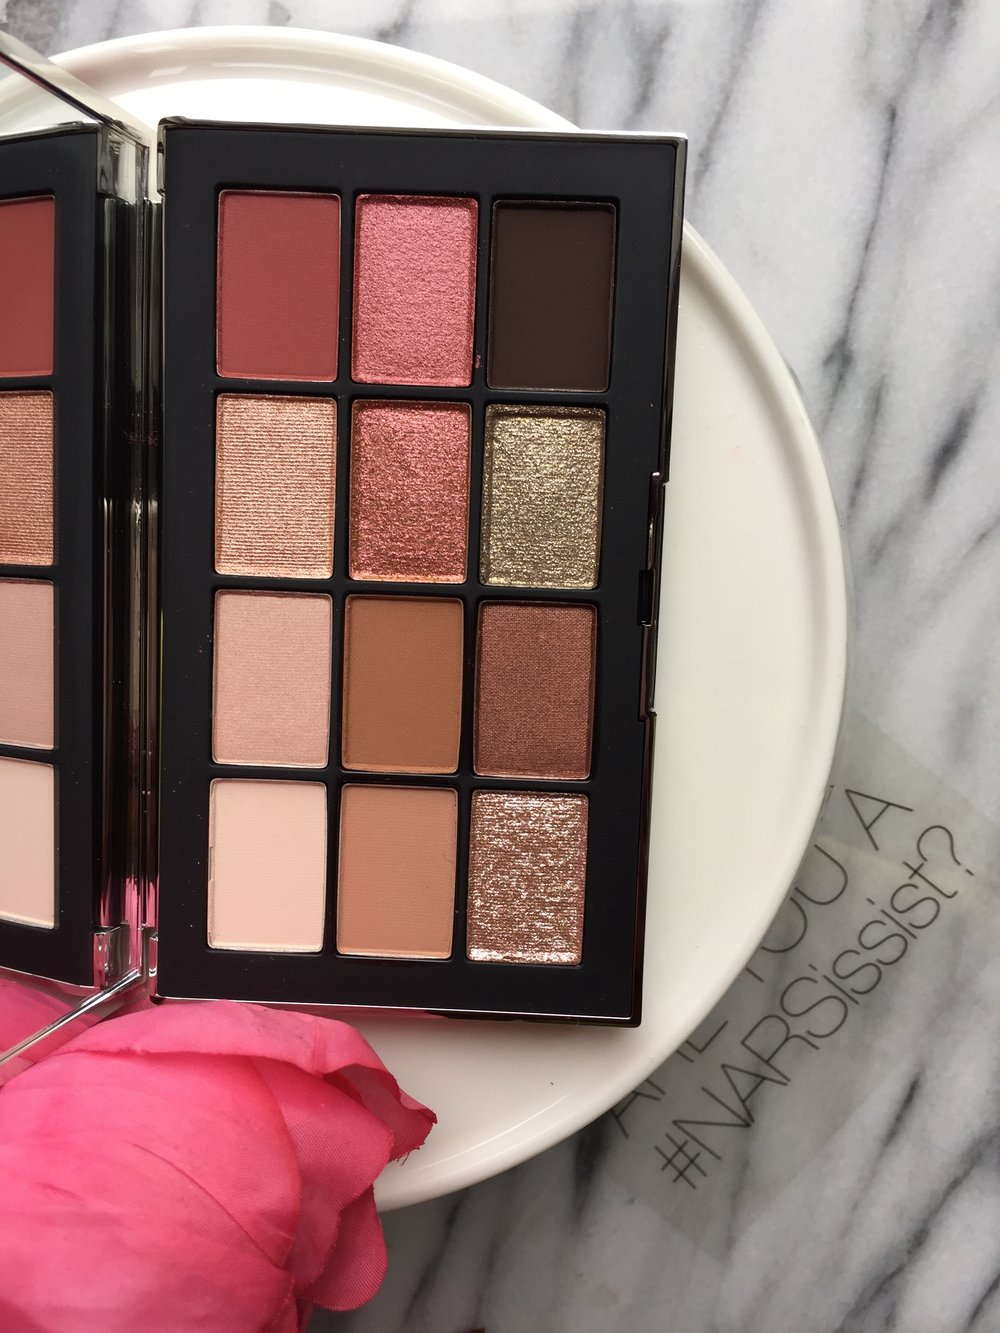 Nars Narcissist Wanted Eyeshadow Palette